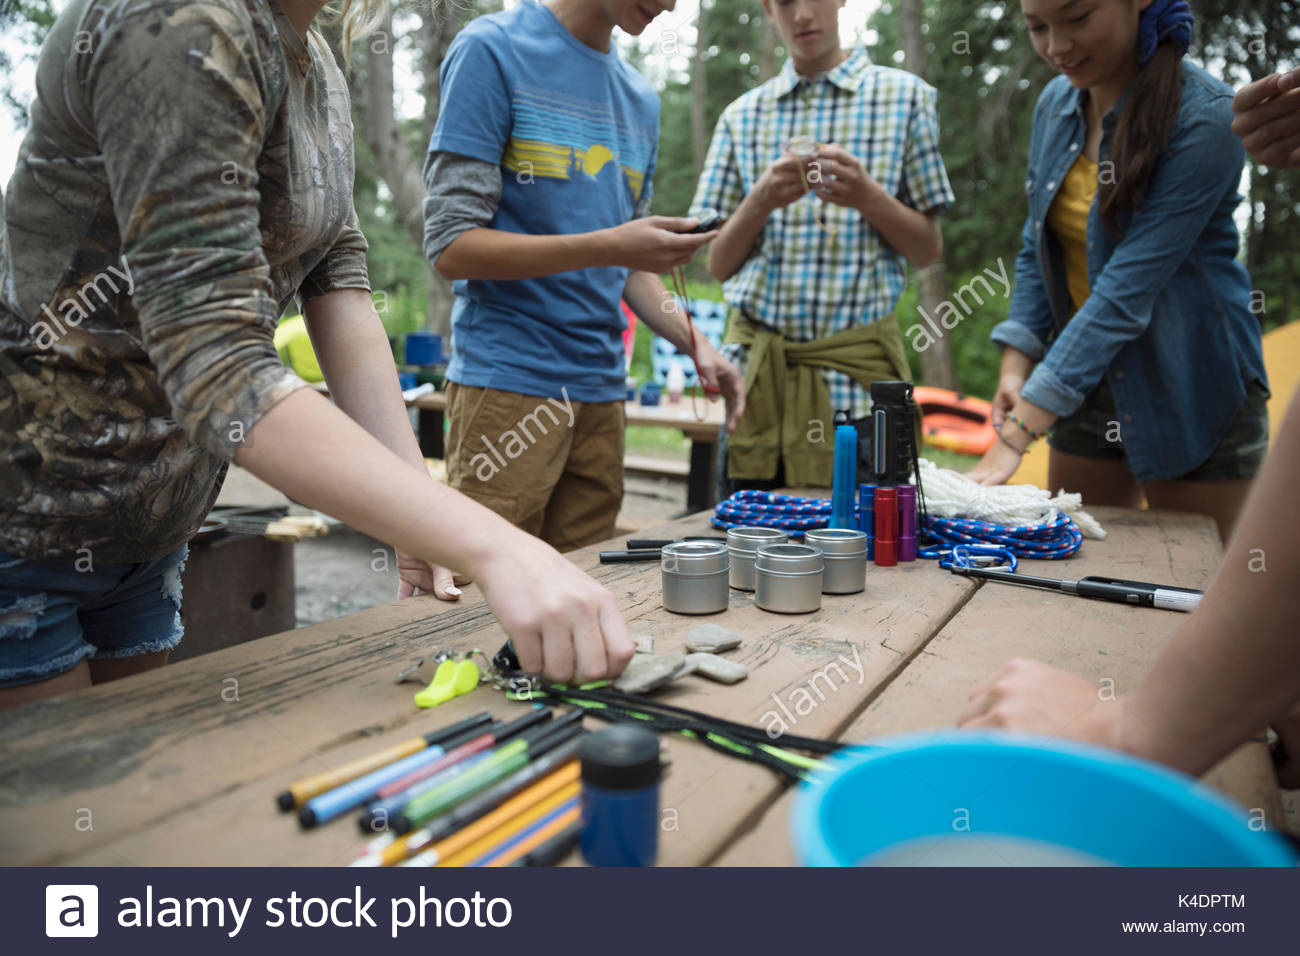 Teenage students preparing equipment at outdoor school campsite picnic table - Stock Image